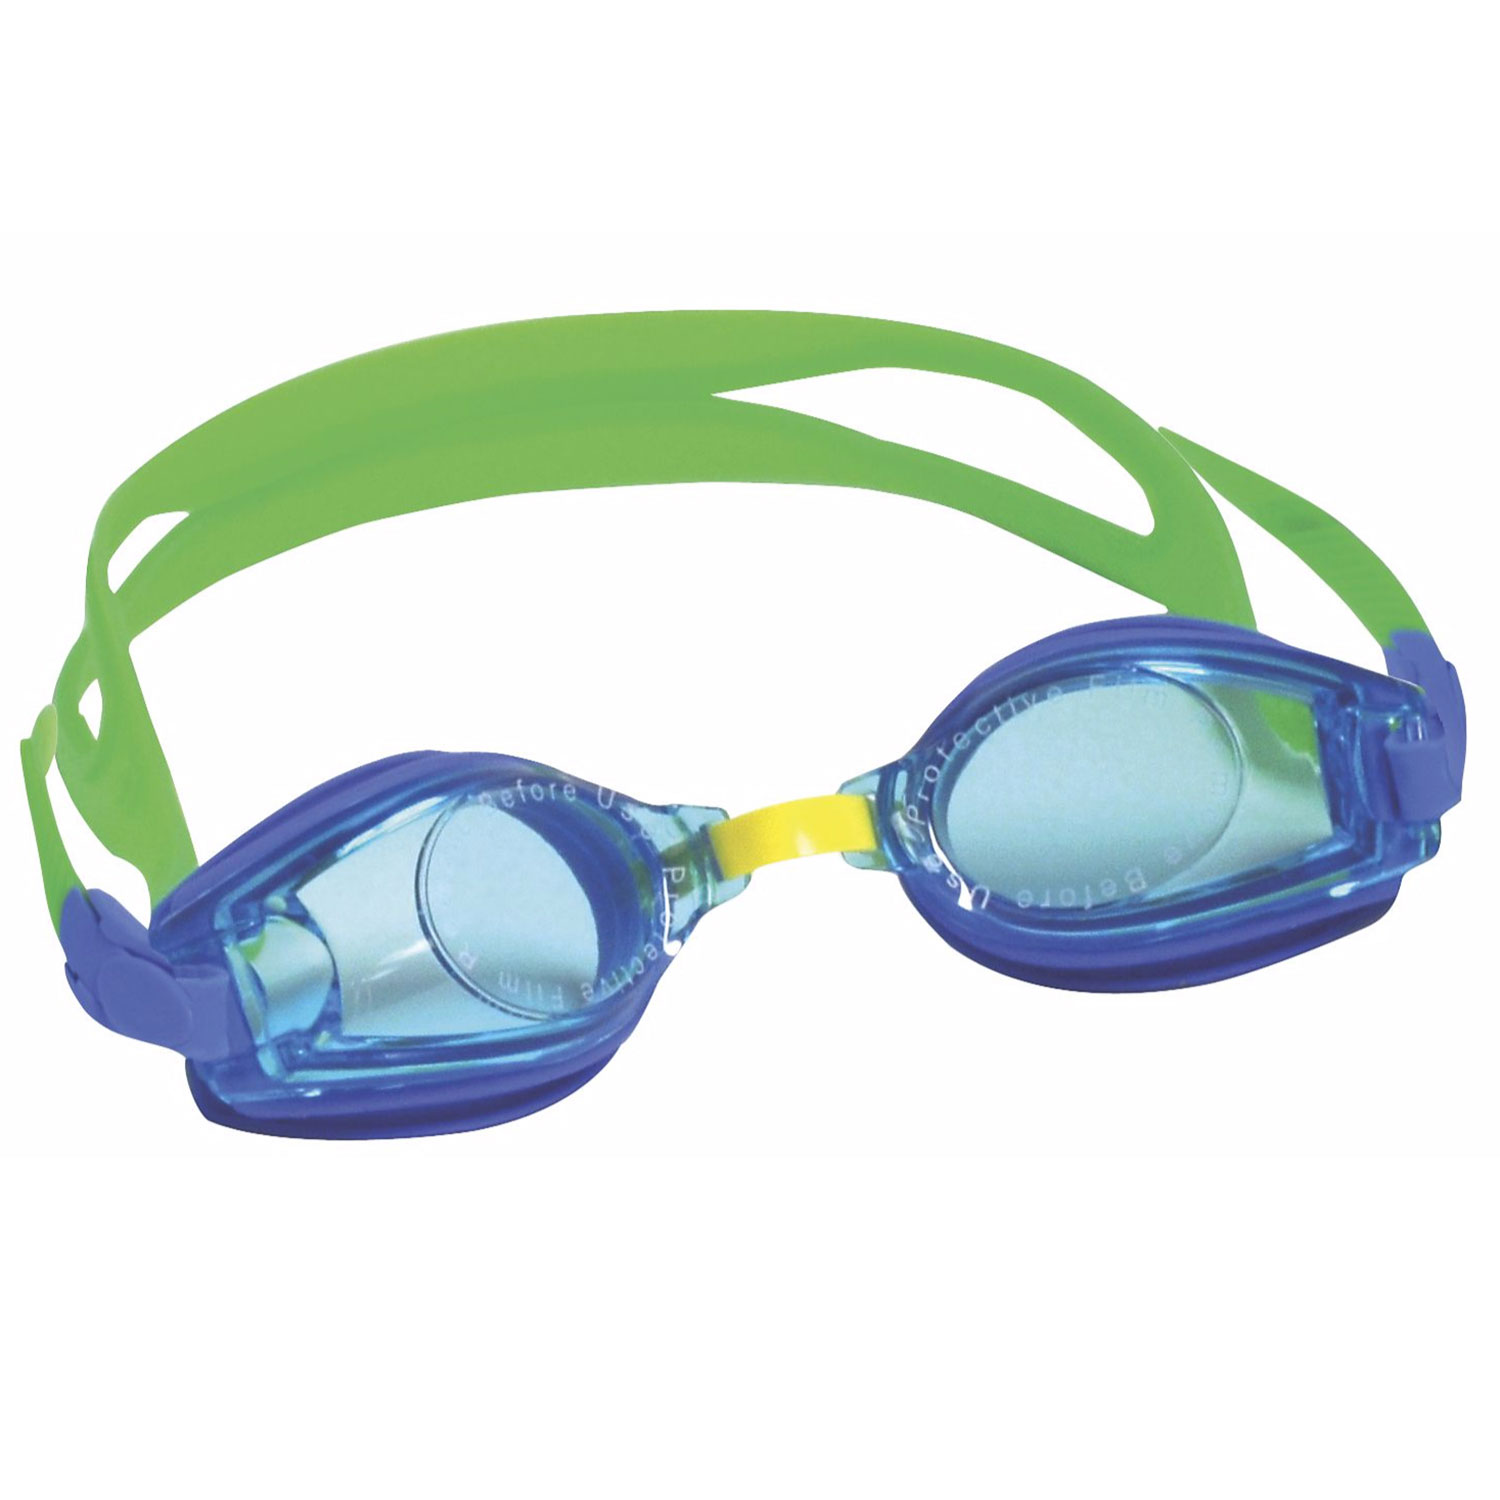 Kids Blue Swim Goggles Anti-Fog, UV Protection Toddler Boys Ages 2-5 by One Step Ahead